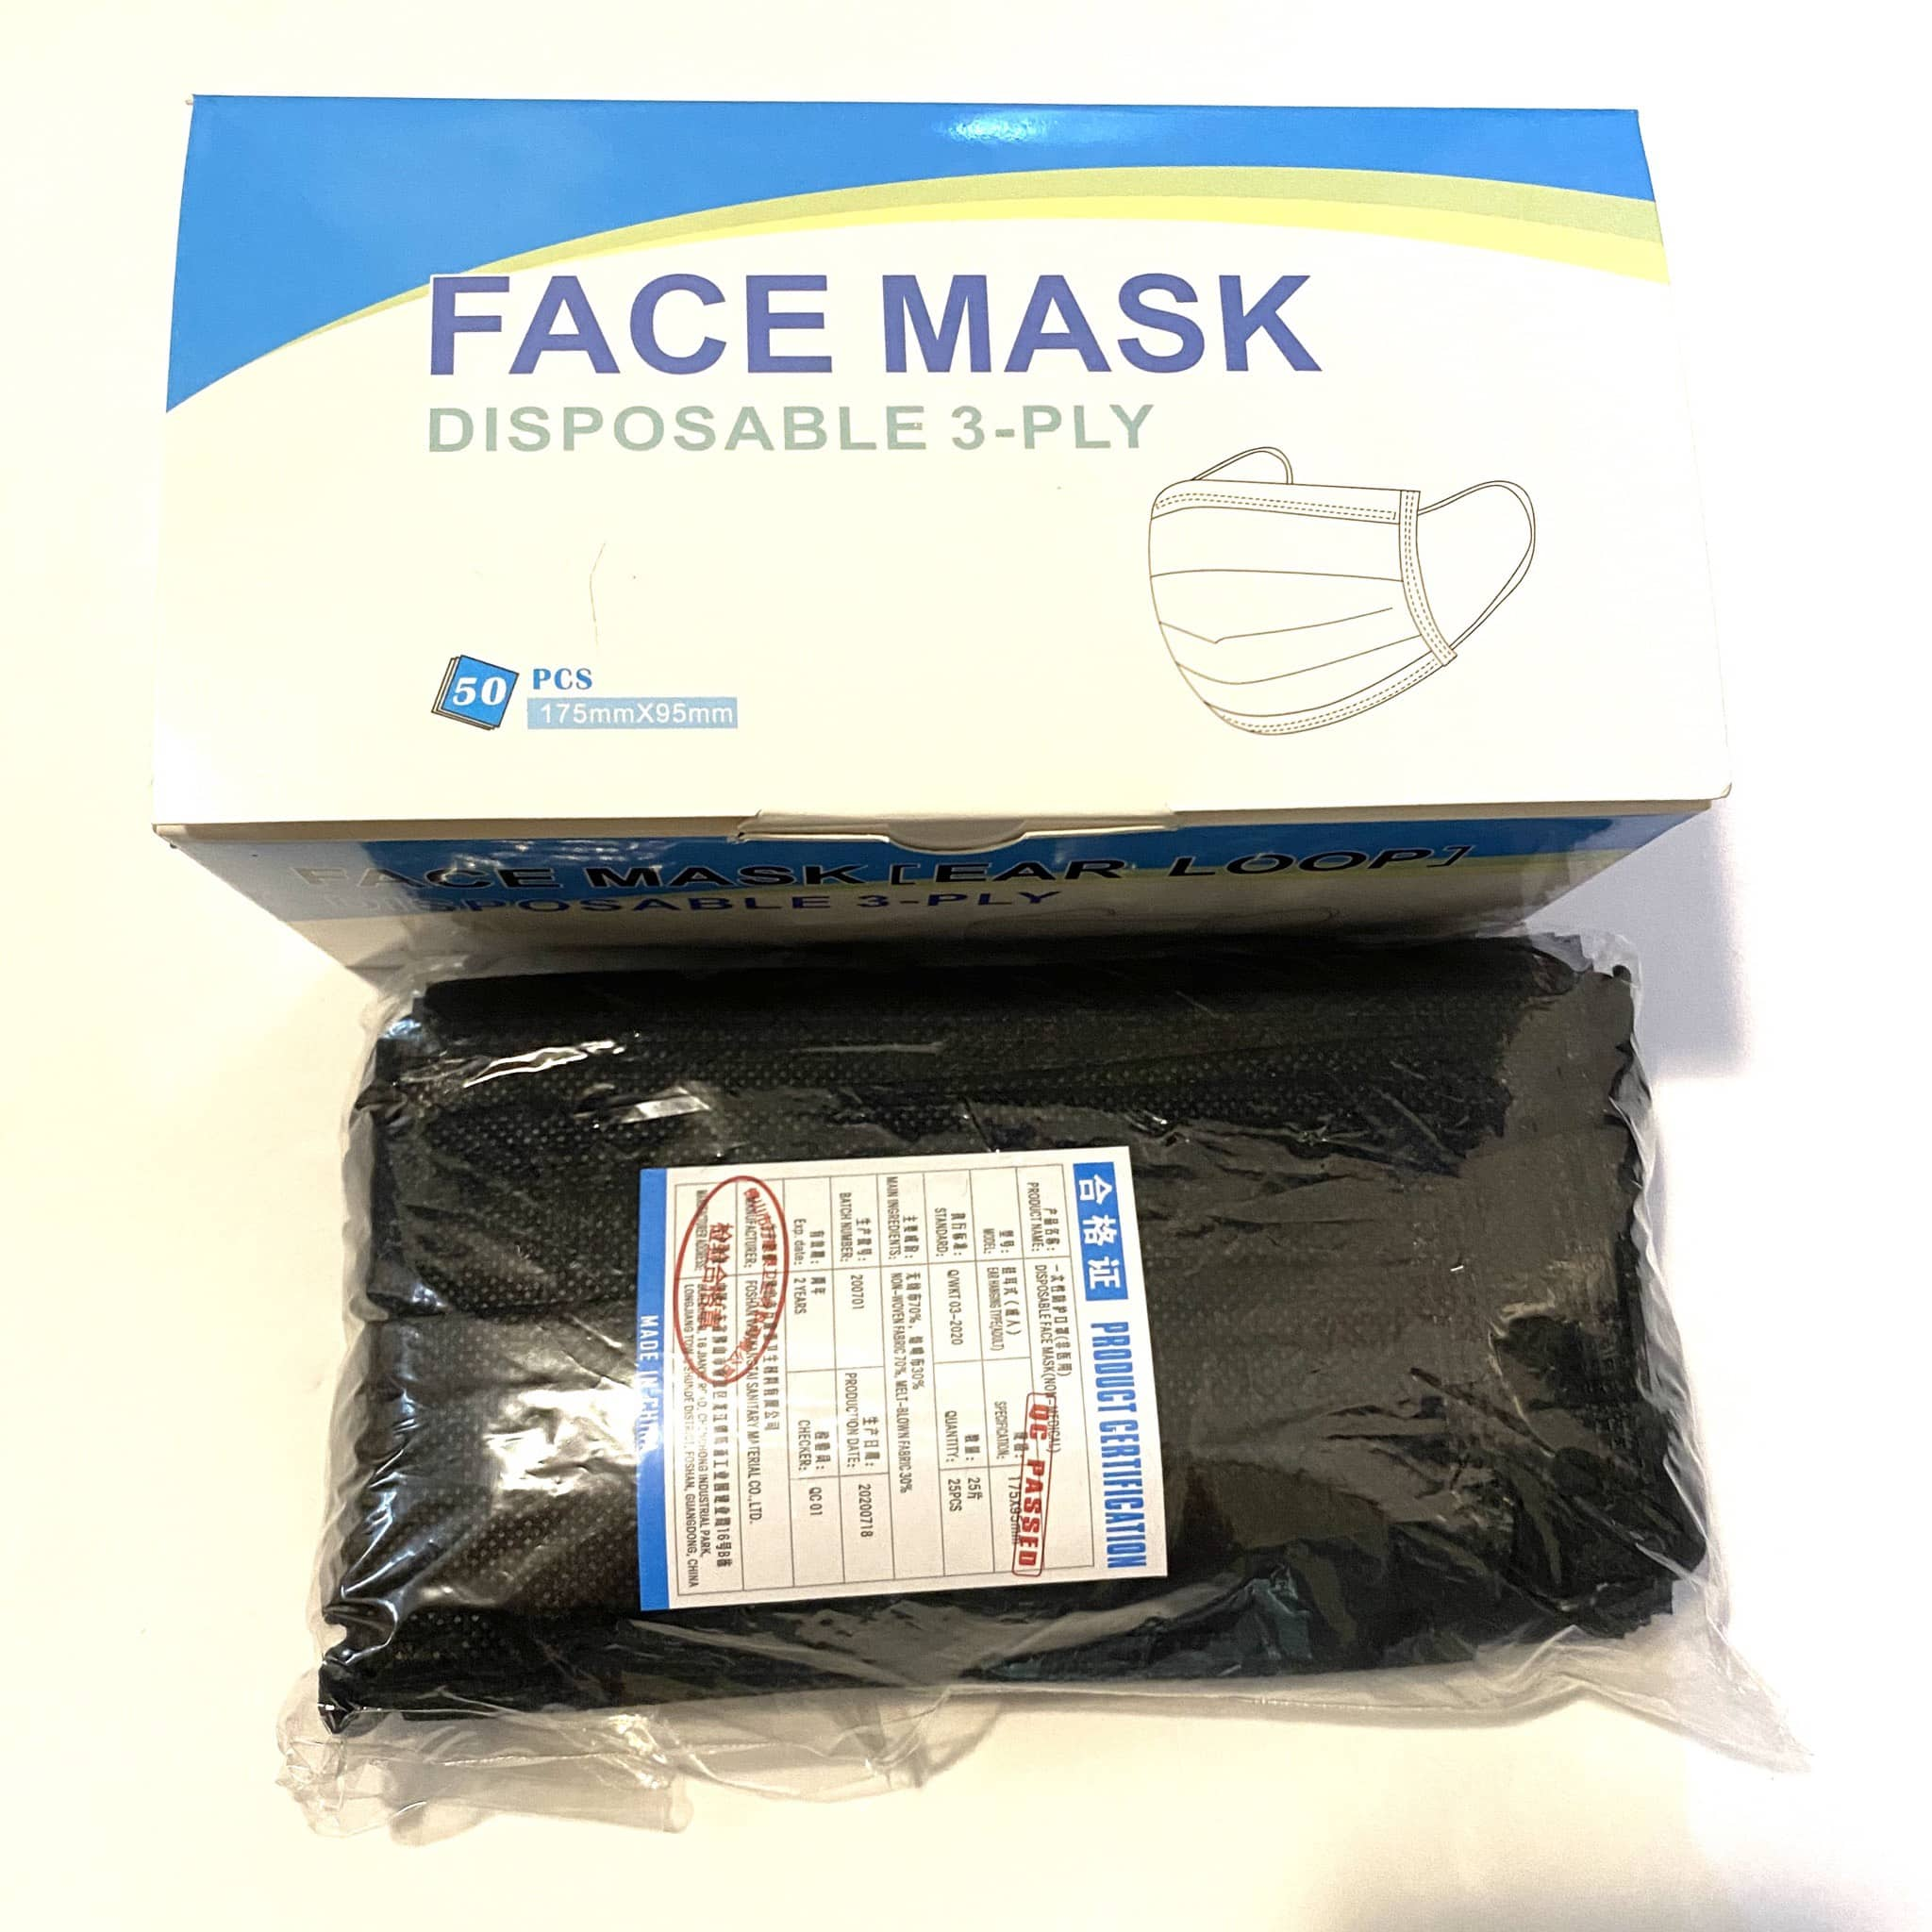 Disposable 3-ply Face Mask (Black)一次性口罩 50 pcs /..